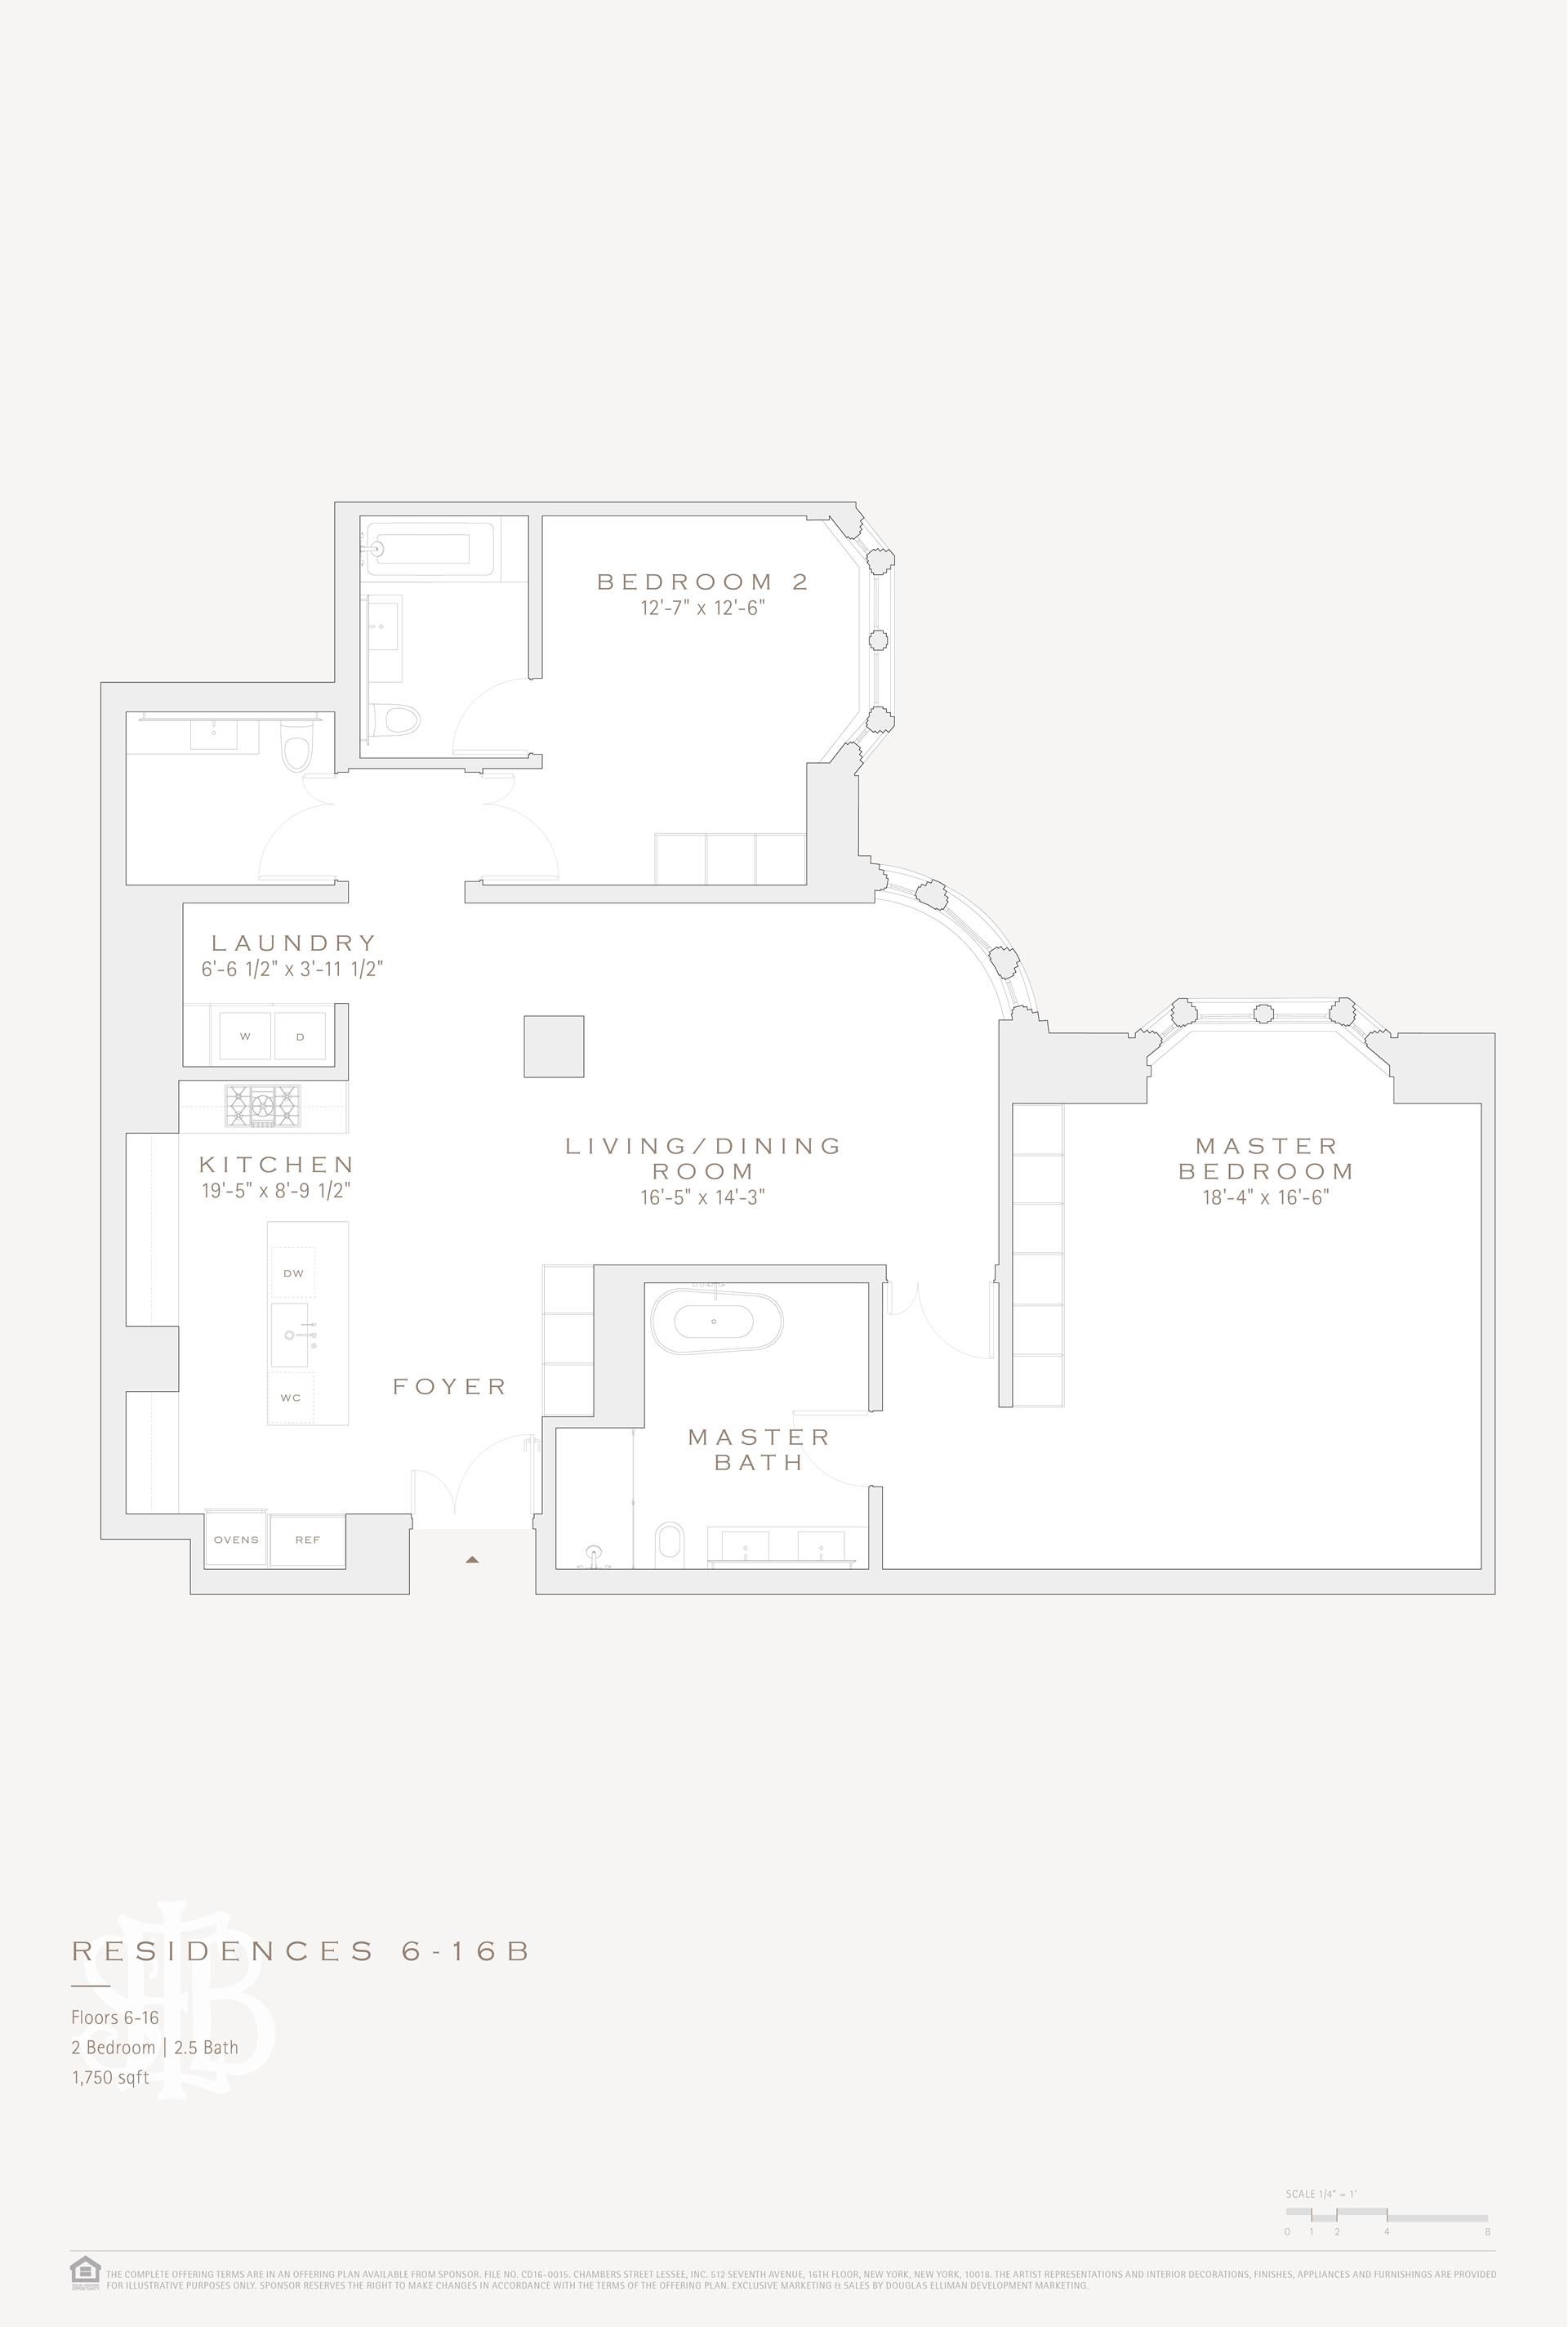 Floor plan of 49 Chambers St, 7B - TriBeCa, New York